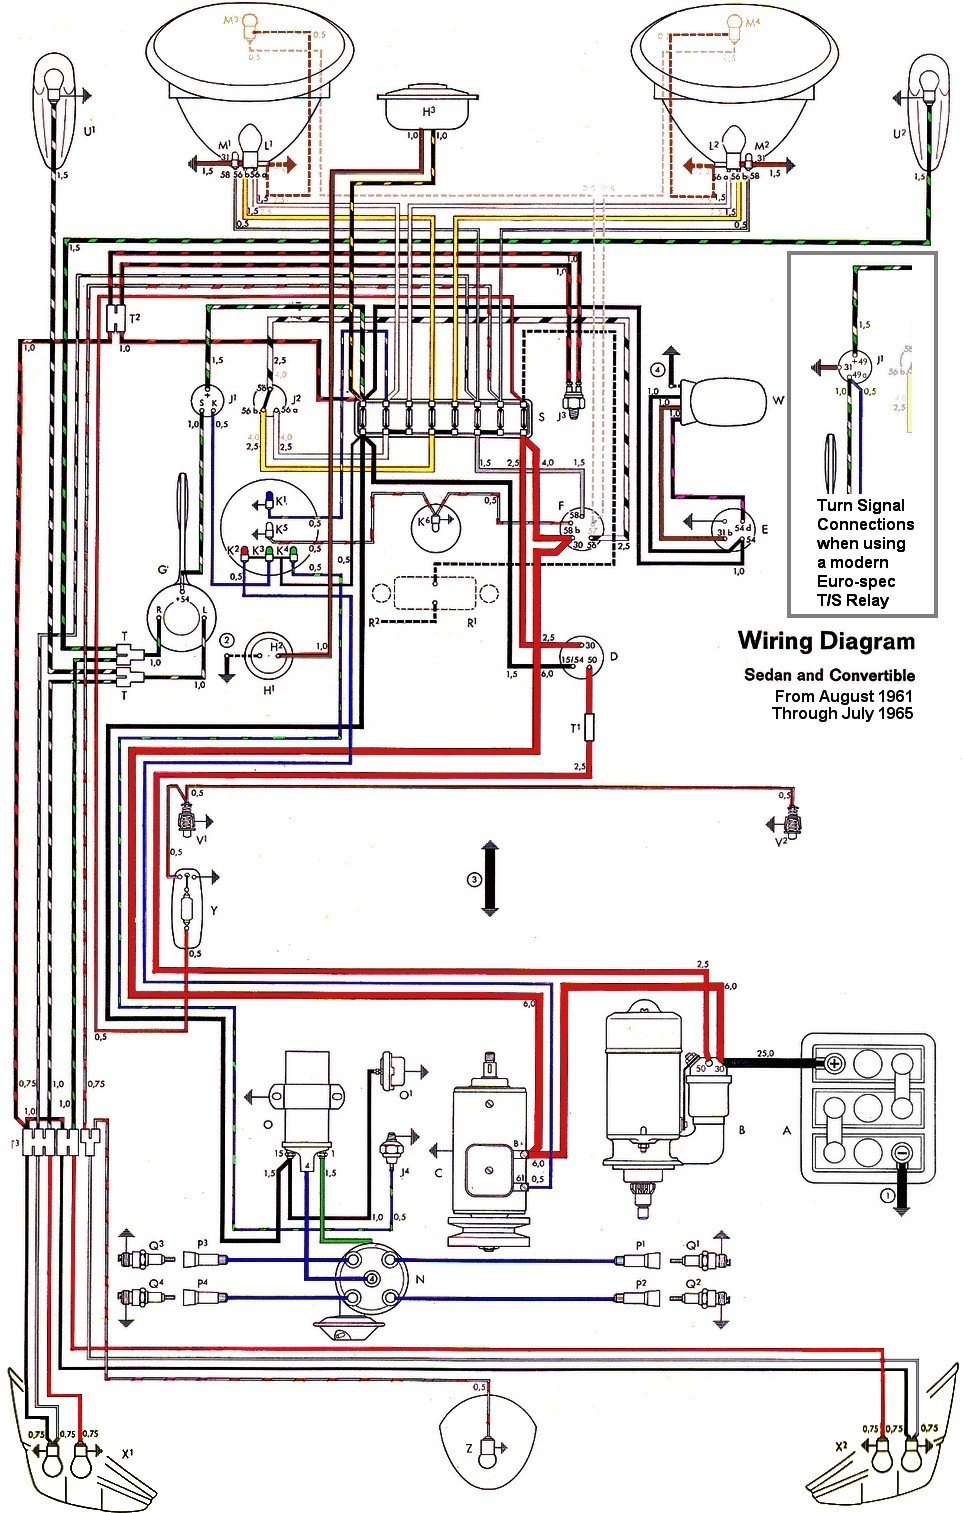 bug_62 65withinset wiring diagram vw beetle sedan and convertible 1961 1965 vw 1974 vw bug fuse box diagram at n-0.co